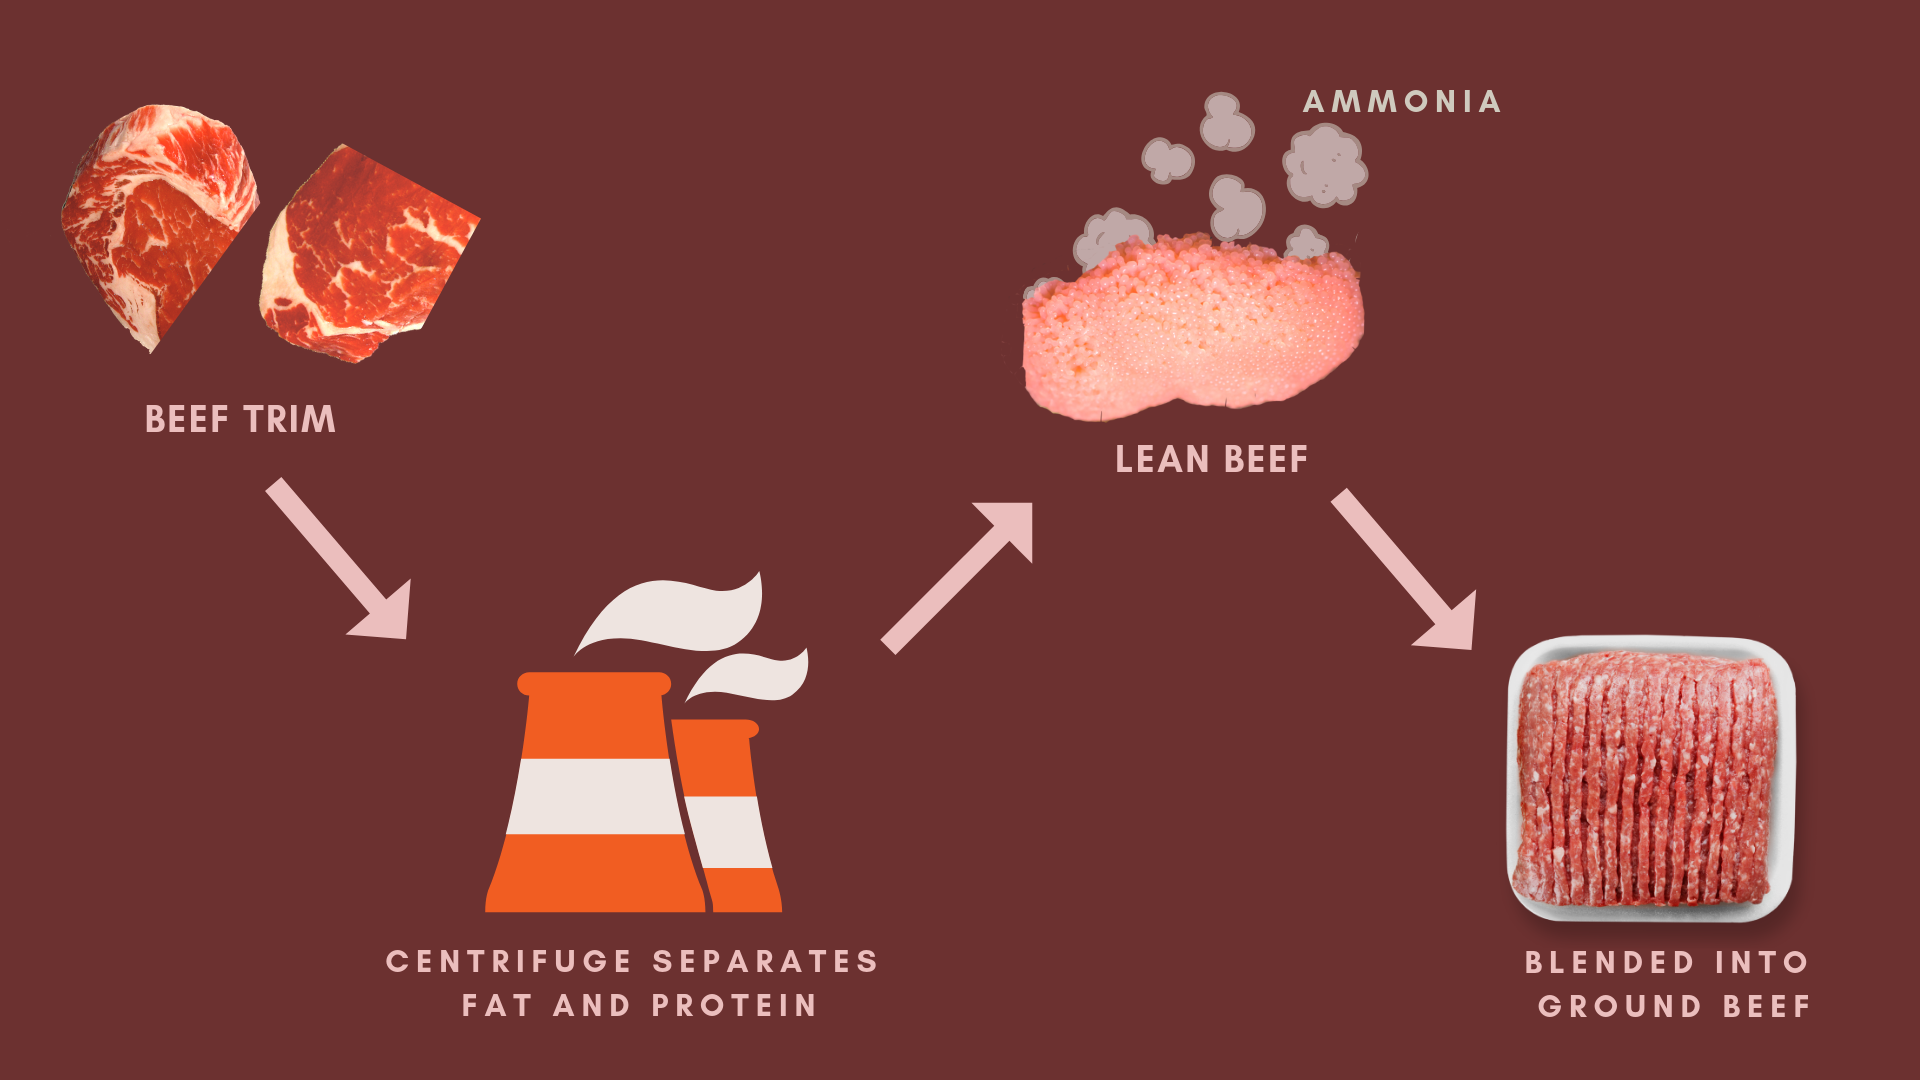 How Beef Products Inc.'s lean finely textured beef product gets made into ground beef